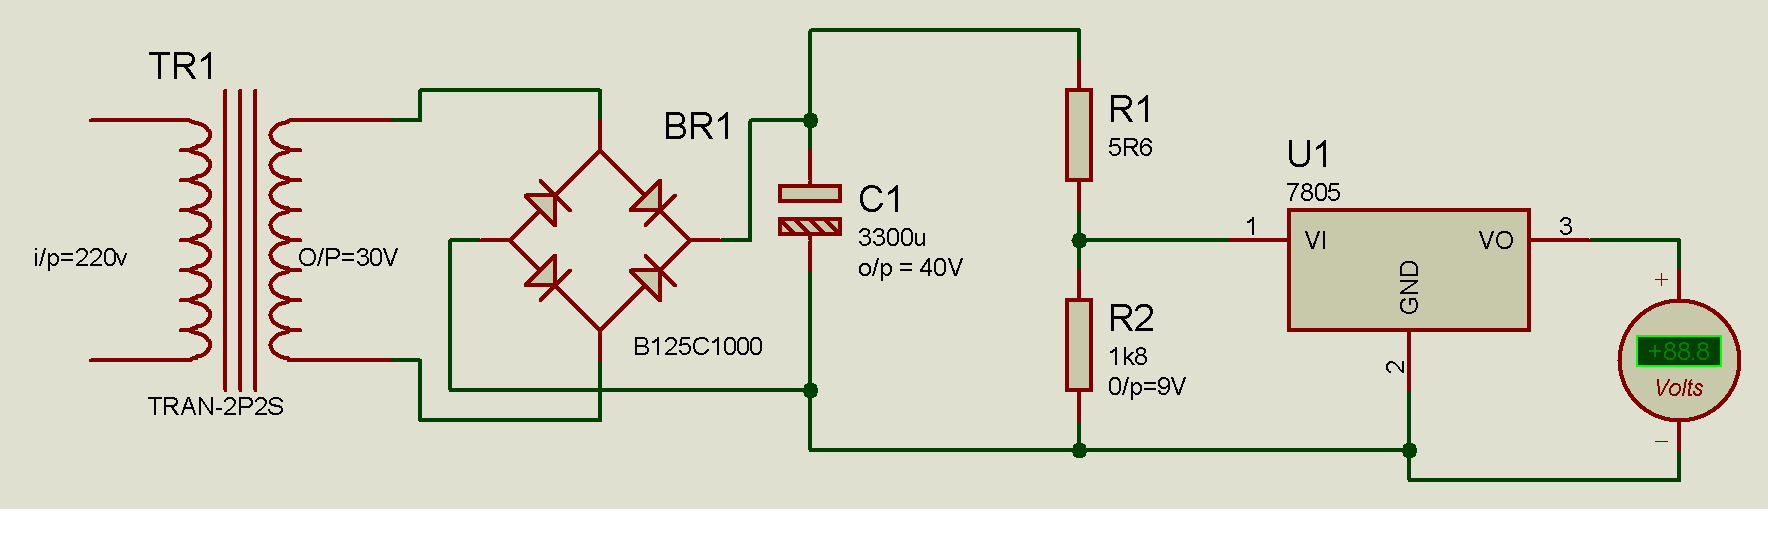 When Connected The Voltage Divider Network To 7805 Circuits Can Be Used Anywhere A Power Zener Diode Function Would 79 1331041547